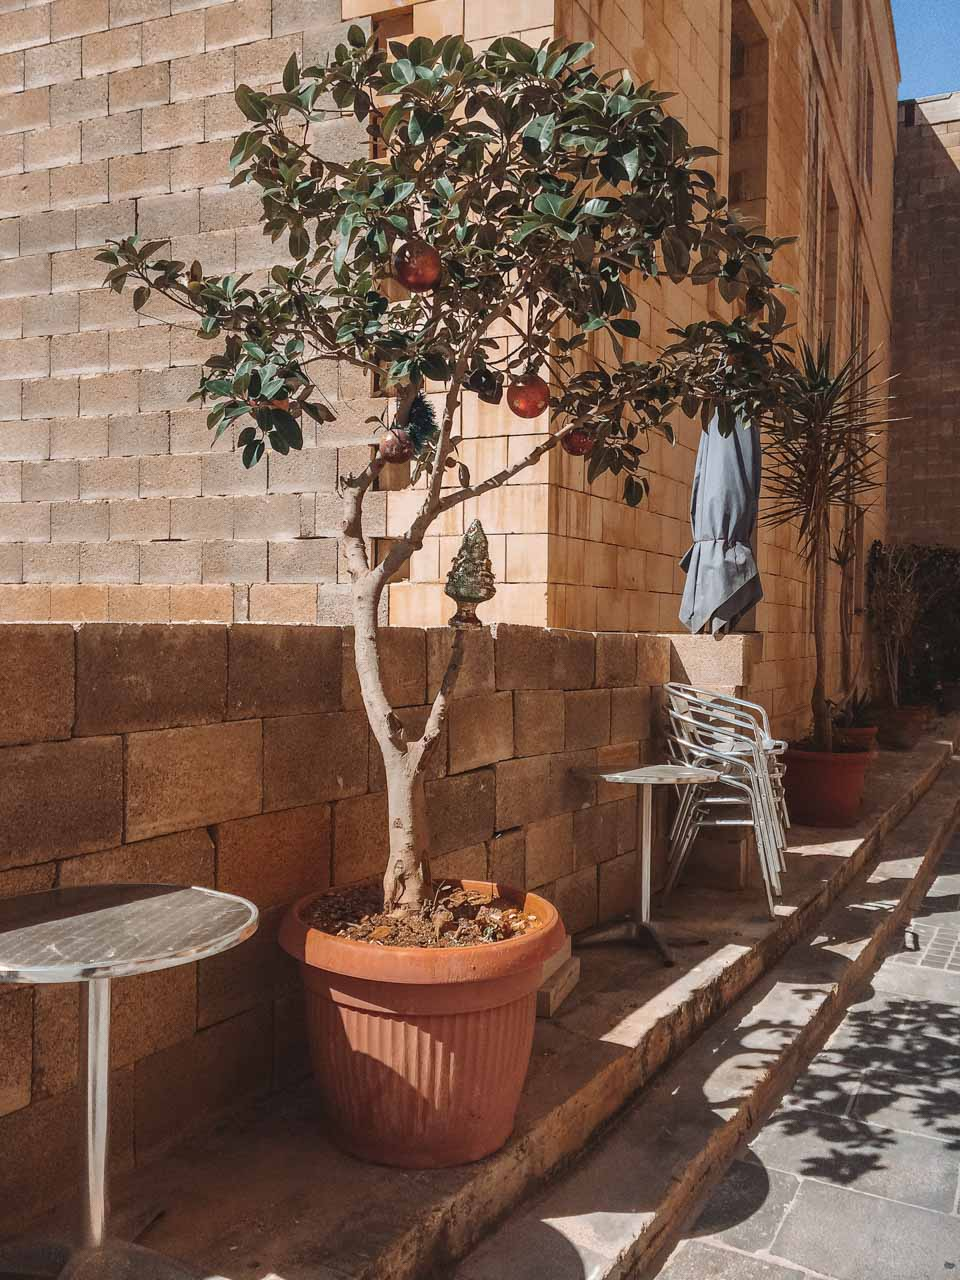 A pomegranate tree planted next to a house in Birgu, Malta